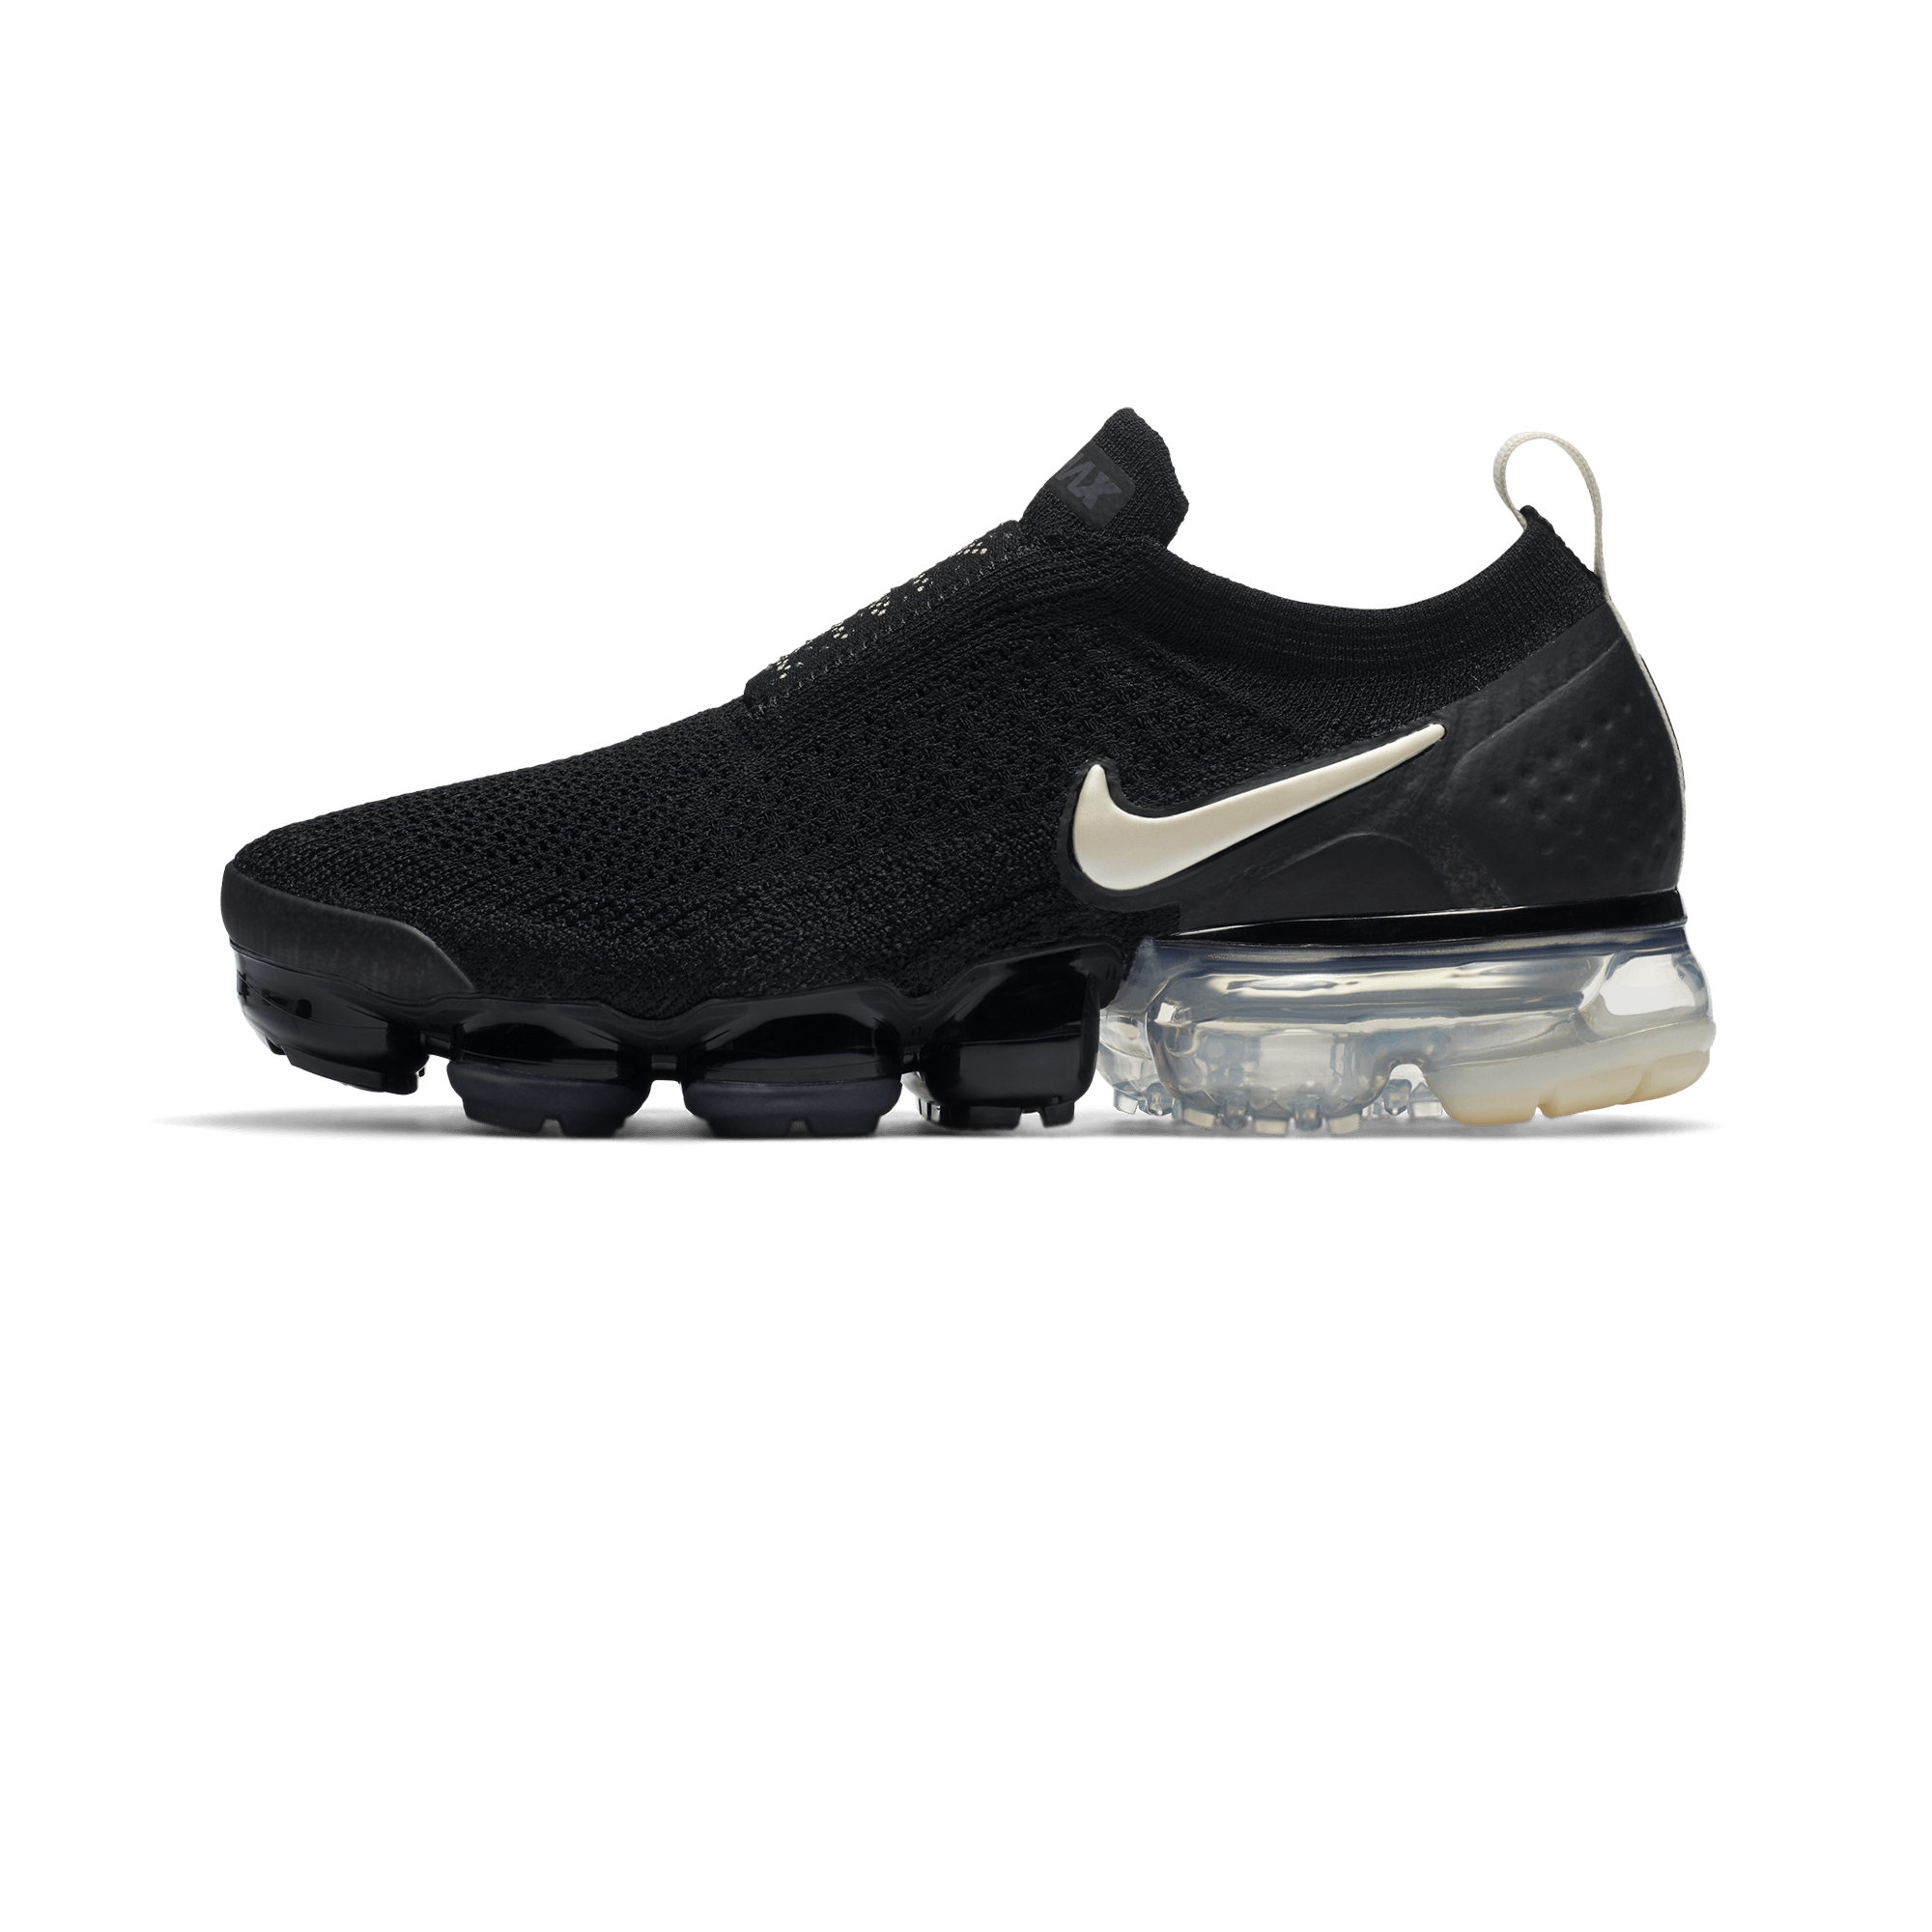 Nike Air Vapormax Flyknit Moc 2 black light cream thunder grey Donna |